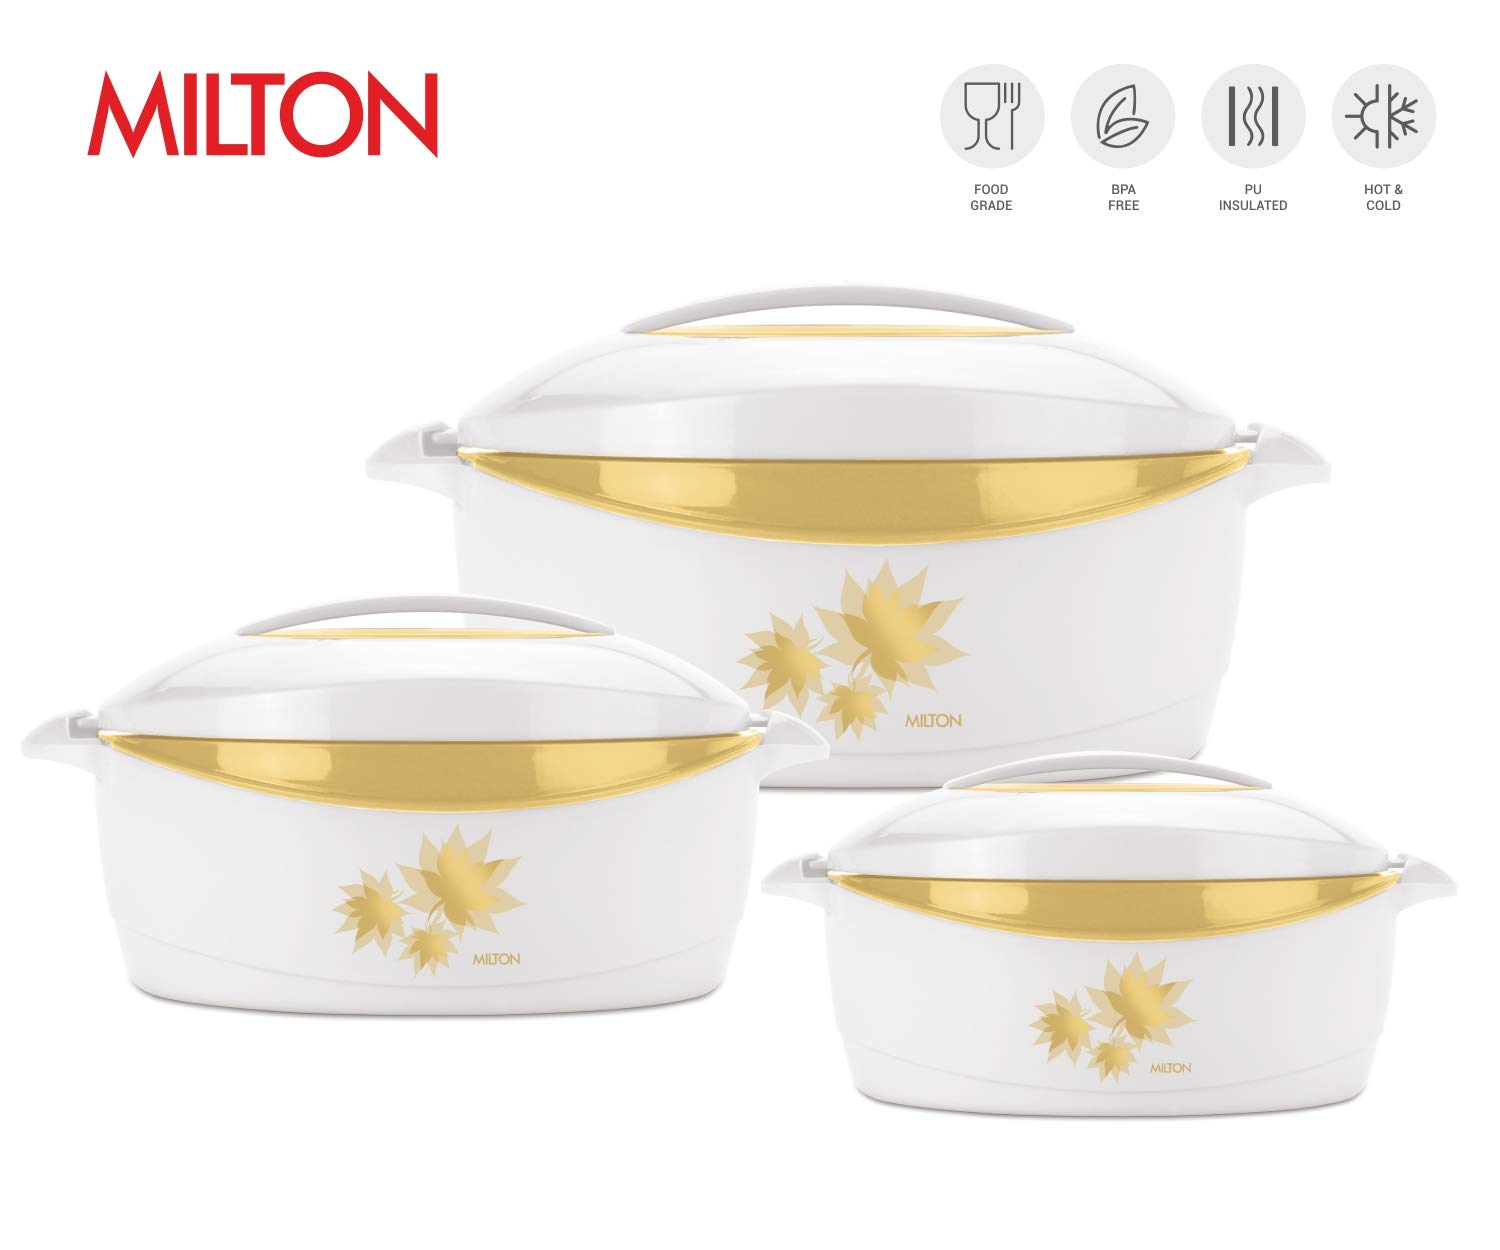 Milton Trumph 3 pc set (34oz/50oz/84 oz) Insulated Hot Pot/Casserole/Serving Bowl with Lid & Stainless Steel Inner - Keep food Hot/Cold upto 4-6 hrs (White/Gold) by MILTON